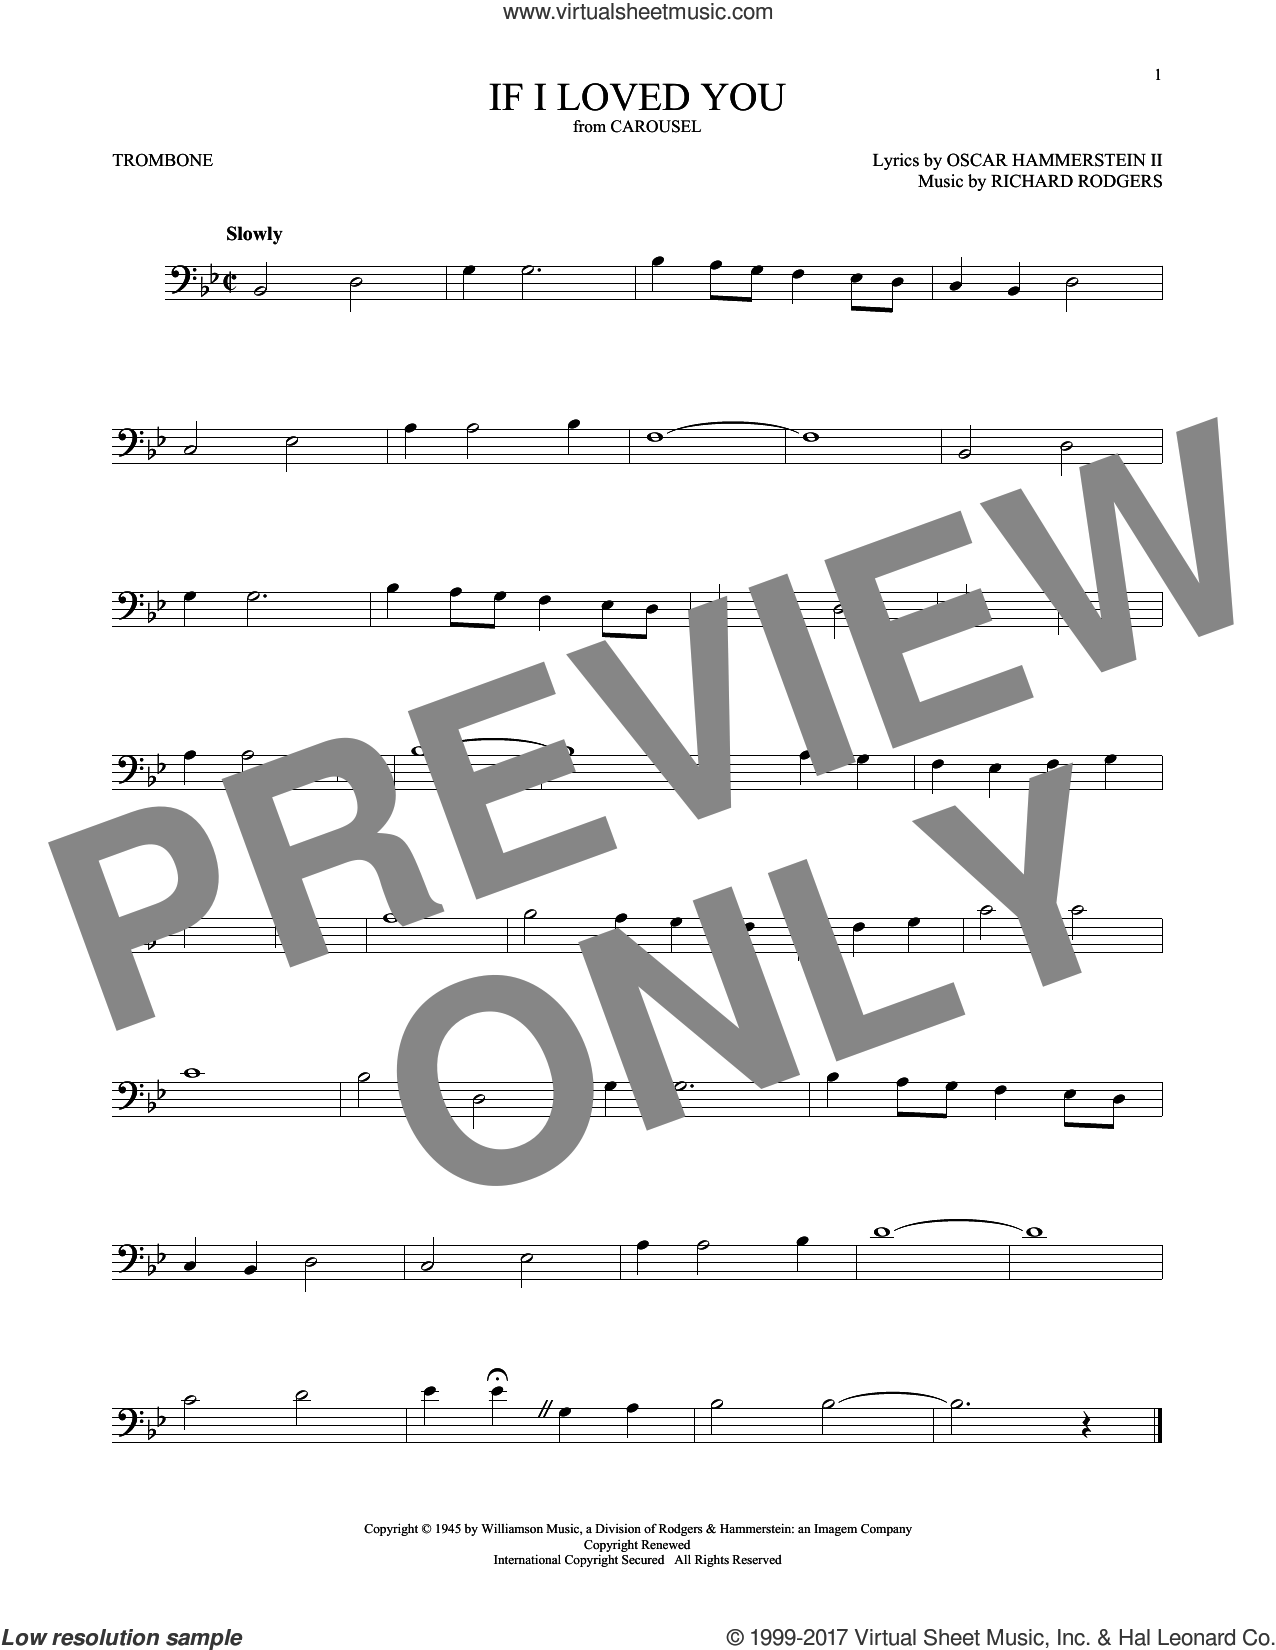 If I Loved You sheet music for trombone solo by Rodgers & Hammerstein, Oscar II Hammerstein and Richard Rodgers, intermediate. Score Image Preview.